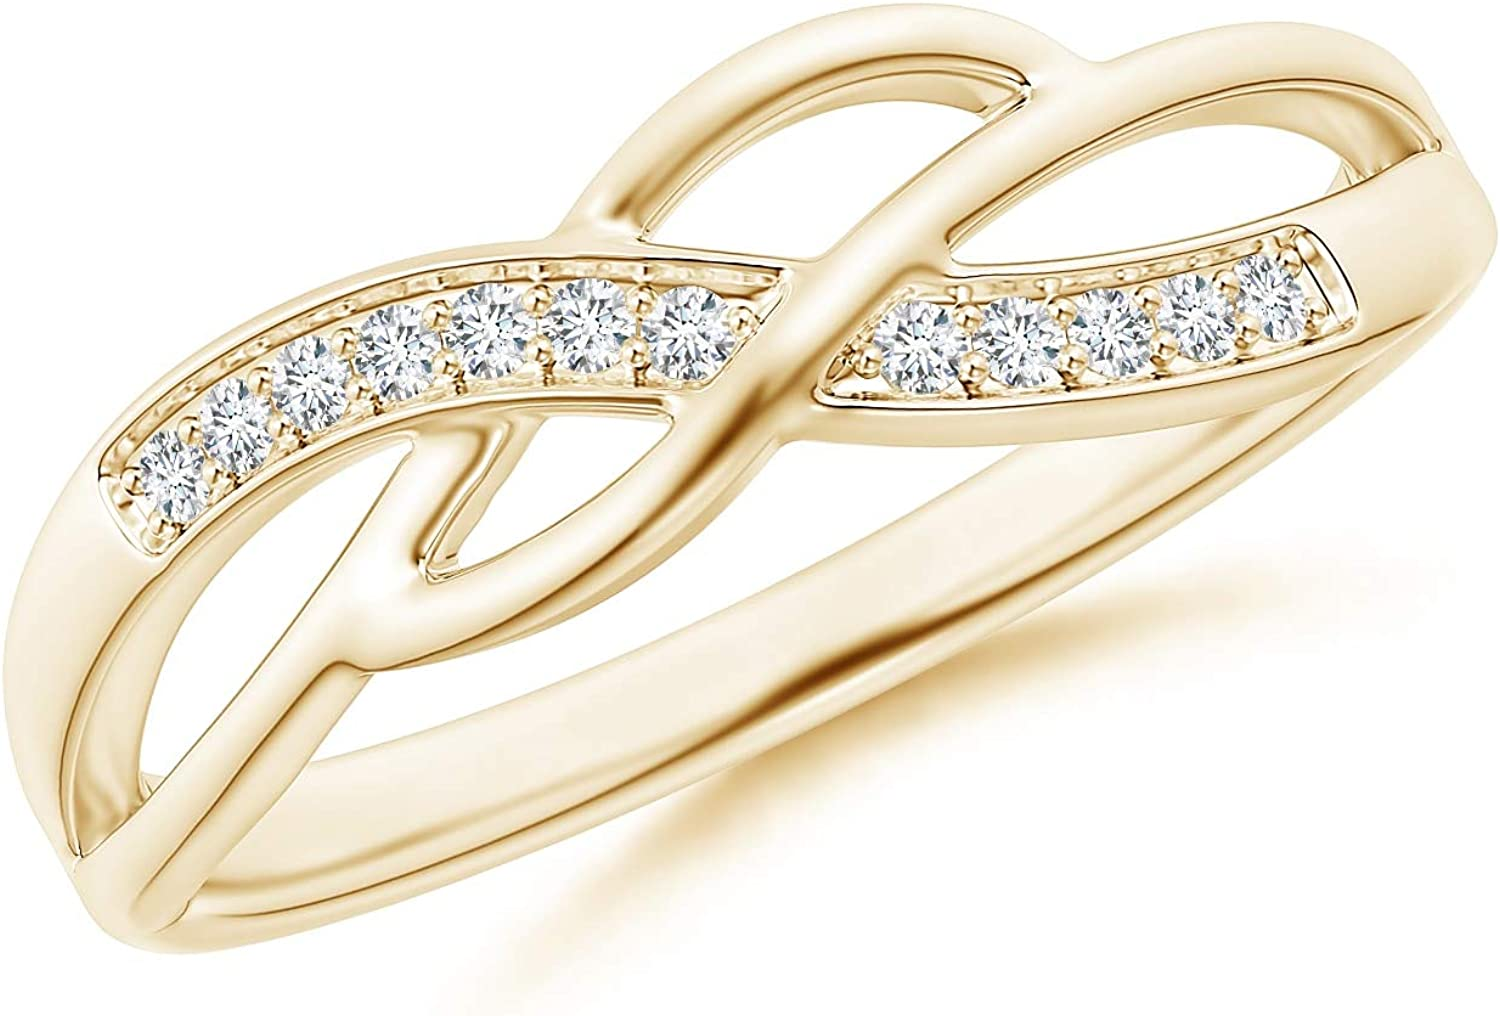 Pave Set Round Diamond Multi-Row Al sold out. Max 80% OFF Crossover in Go 14K Yellow Band